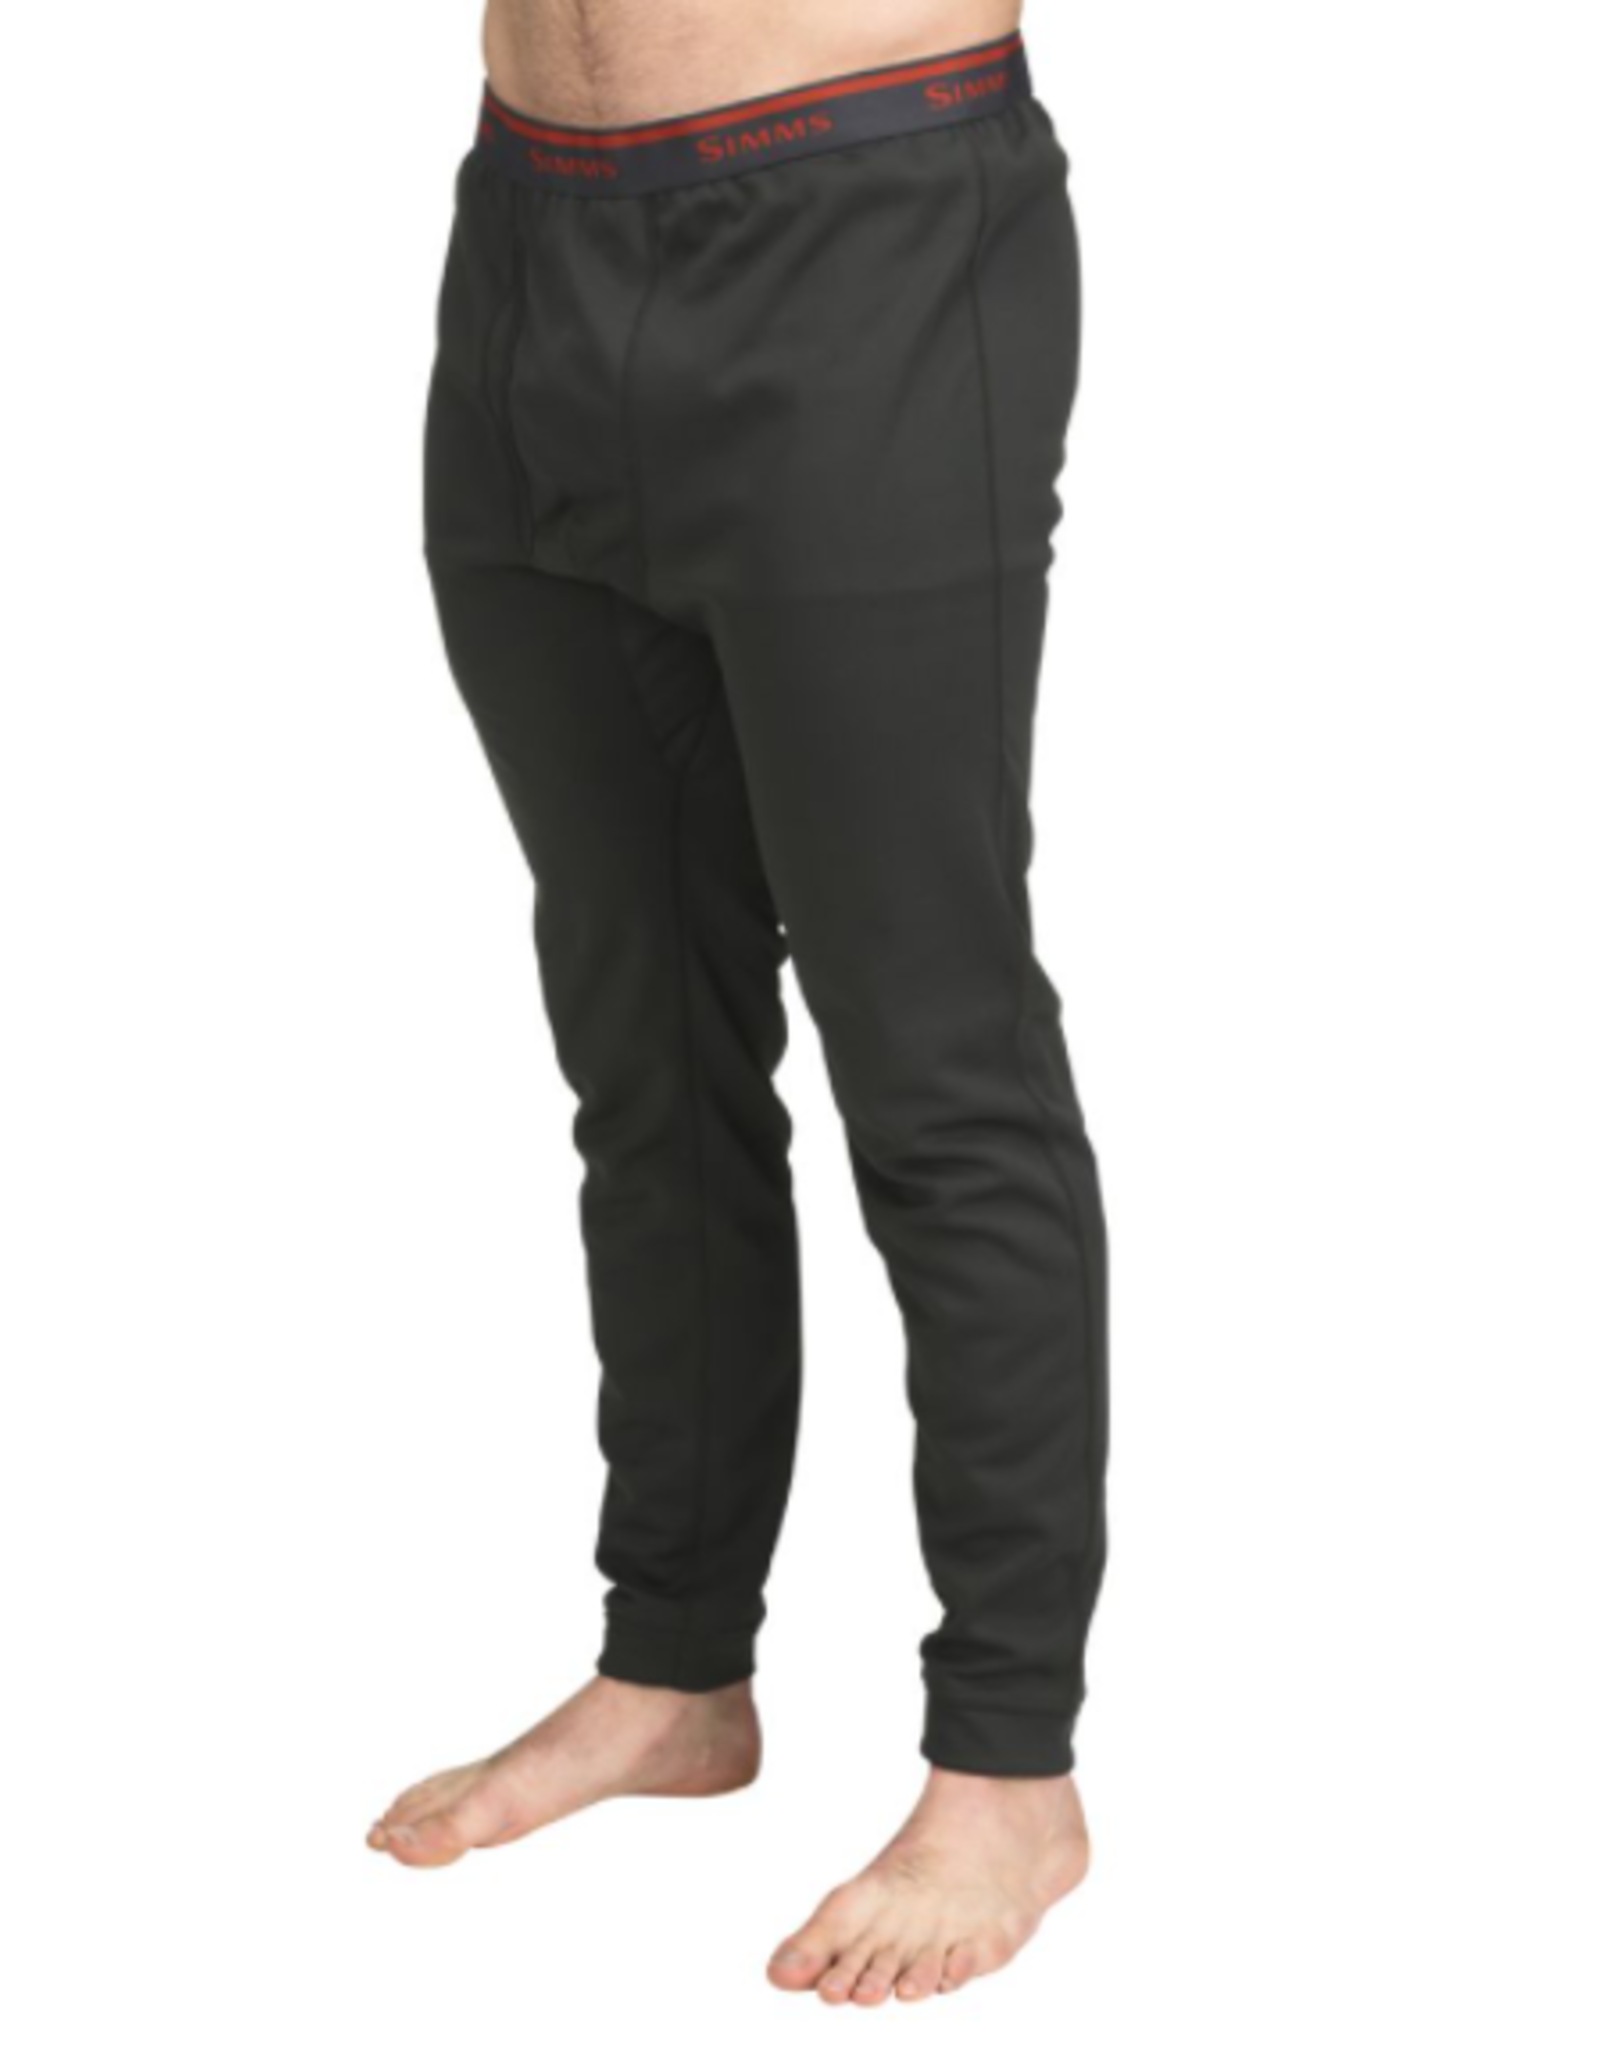 Warm, moisture-wicking bottoms that feature a soft, anti-microbial polyester interior for layering under waders or bibs.